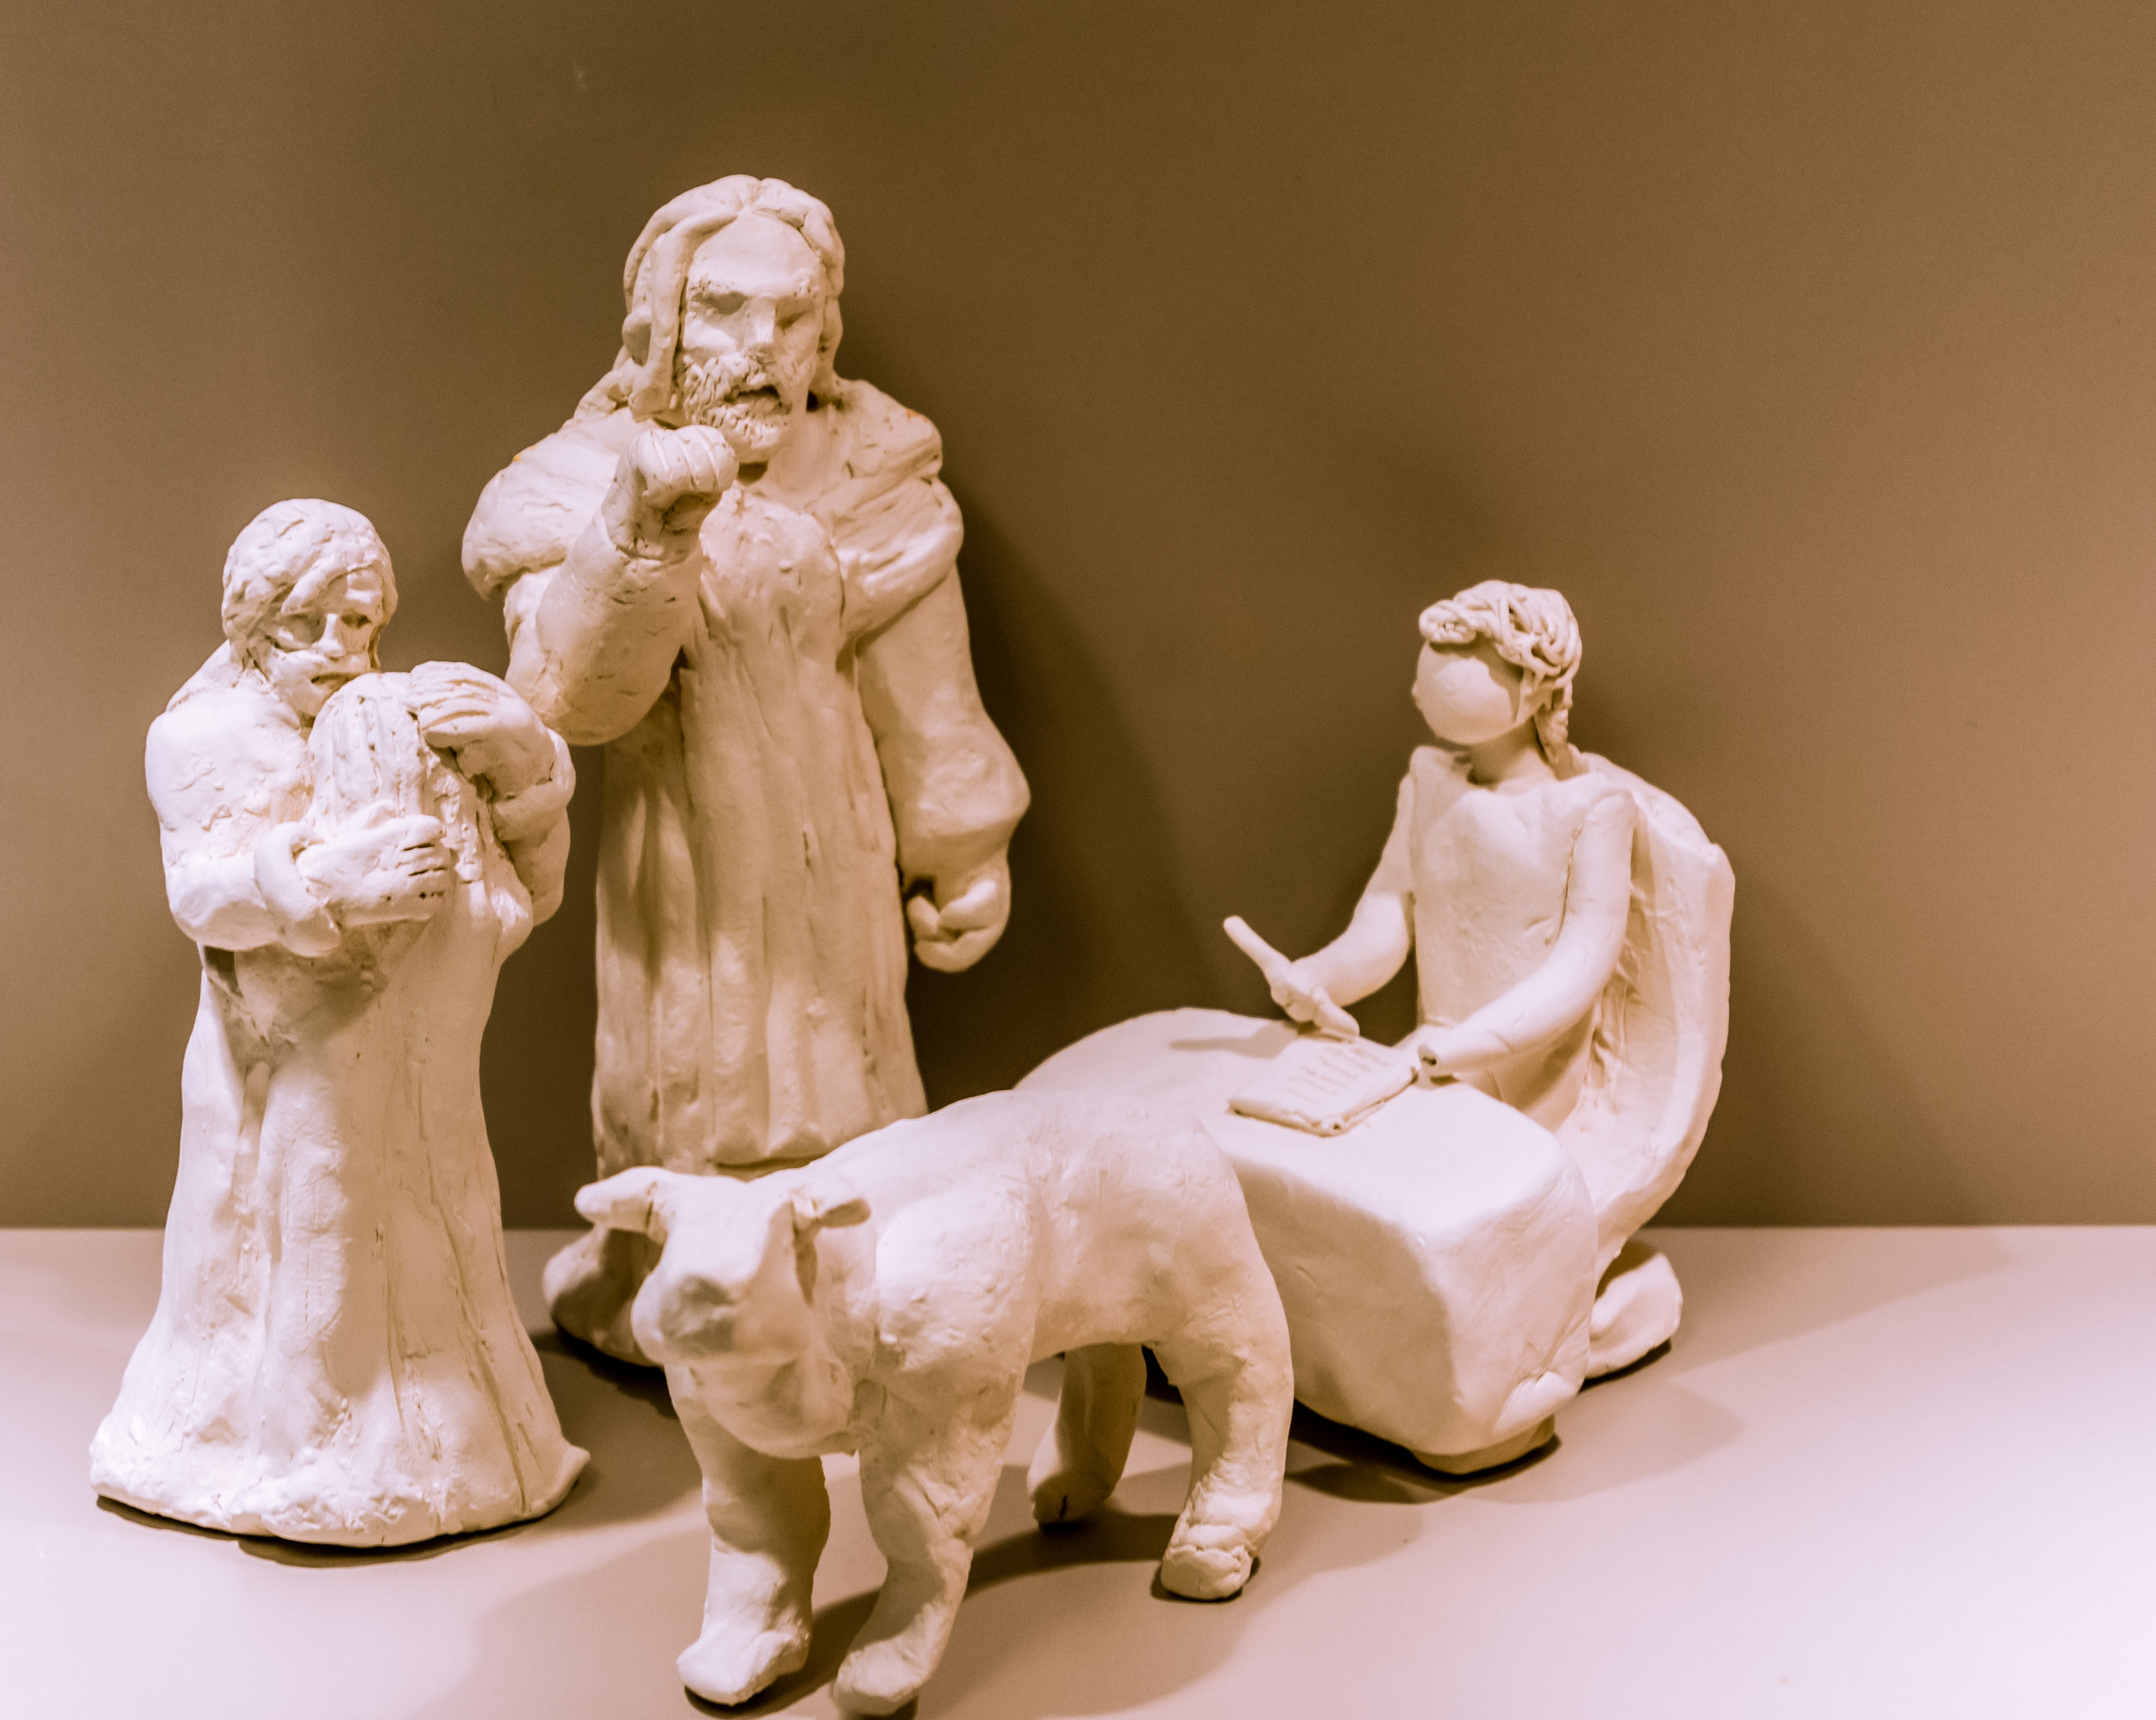 Photo Description: Four white sculptures from left to right they are one of a Christ holding an woman; Christ with his hand in a knocking position; a bull looking upwards; and a woman seated at a table with a pen in her hand.